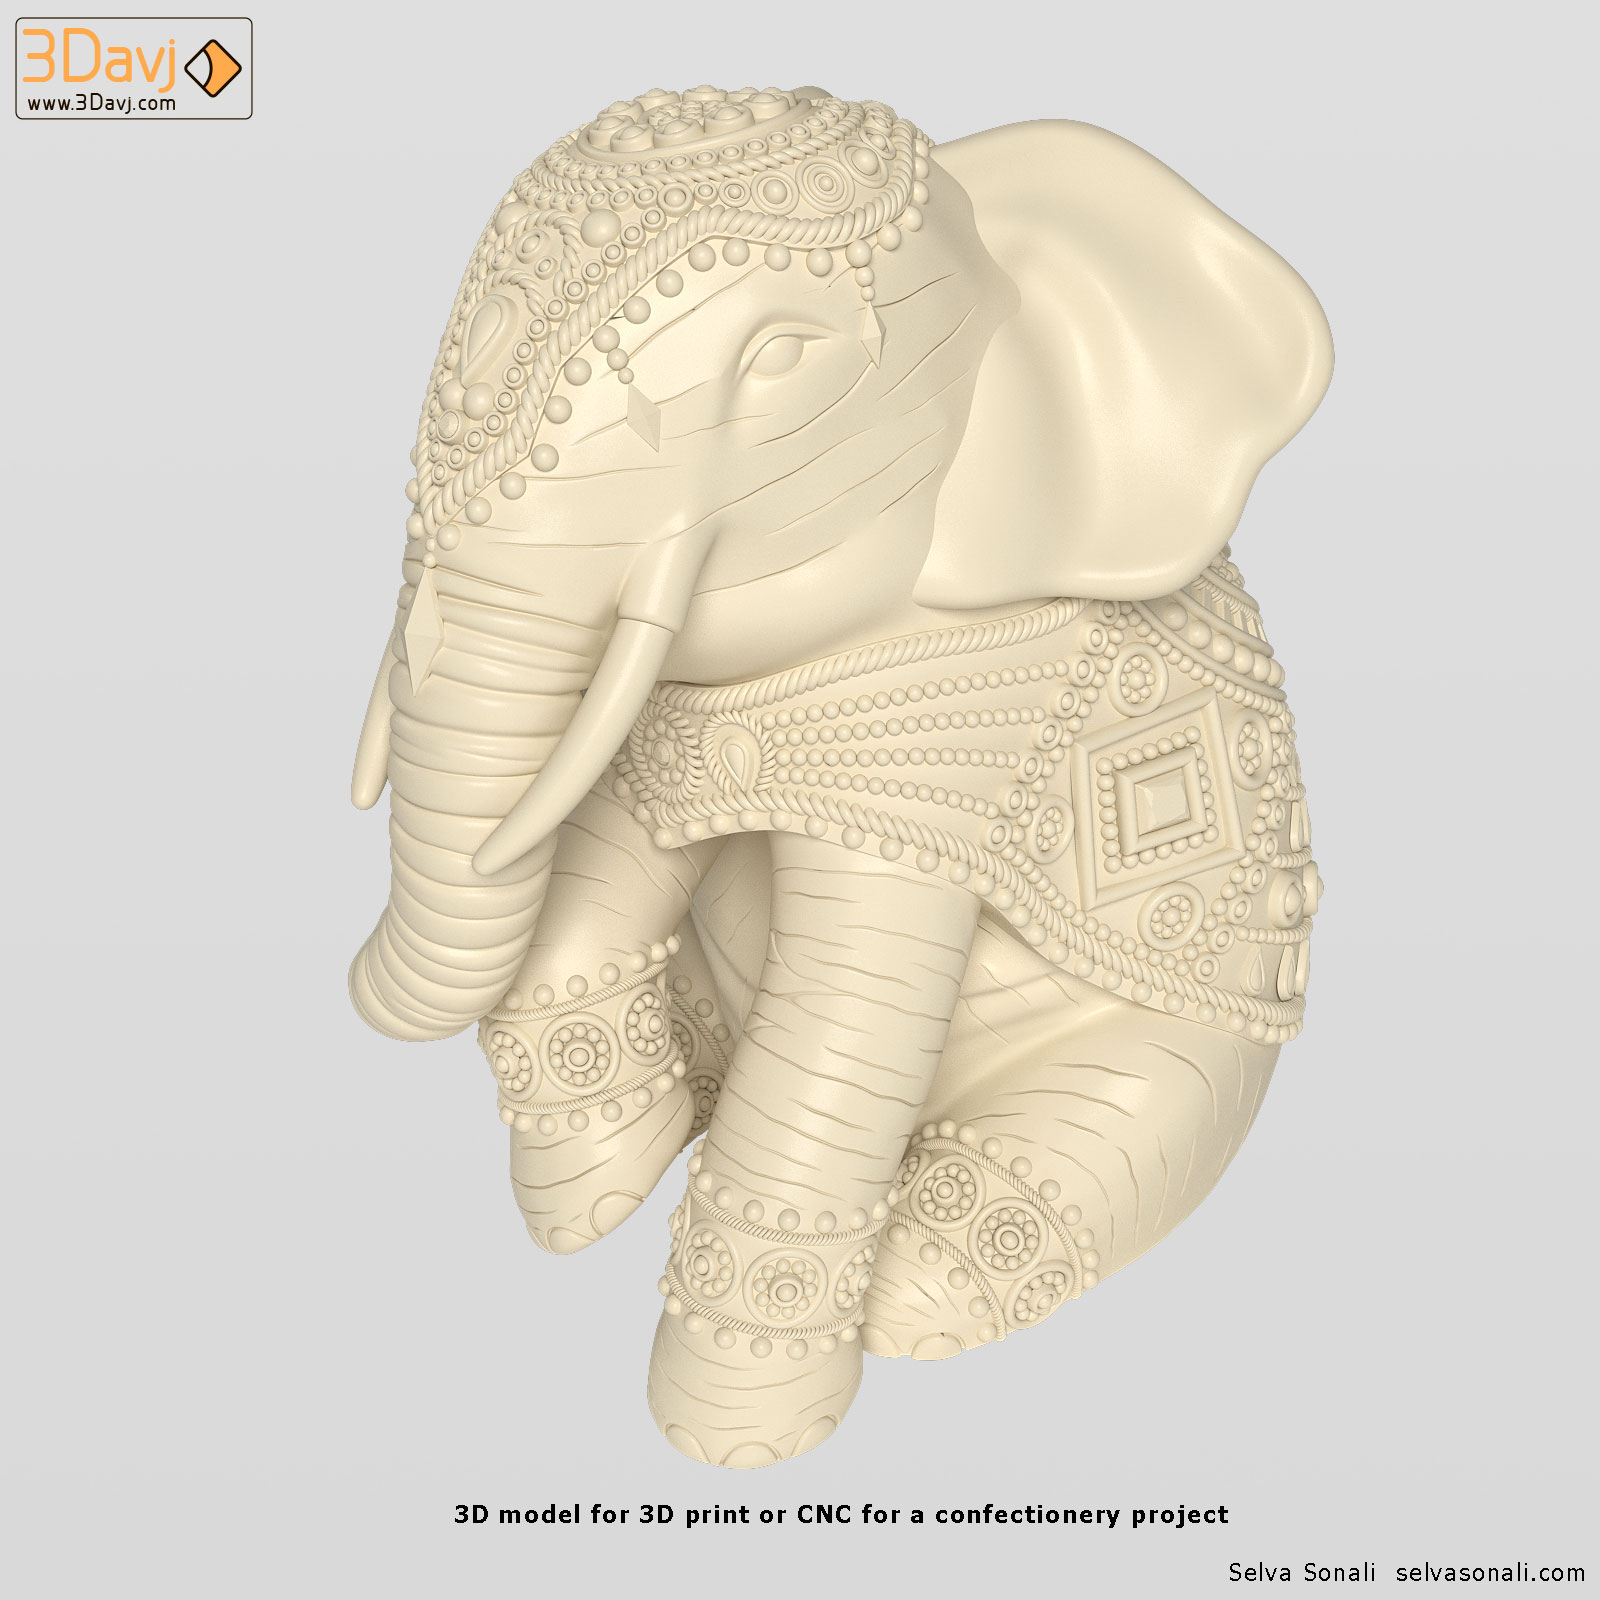 3d-model-for-cnc-indian-elephant-1